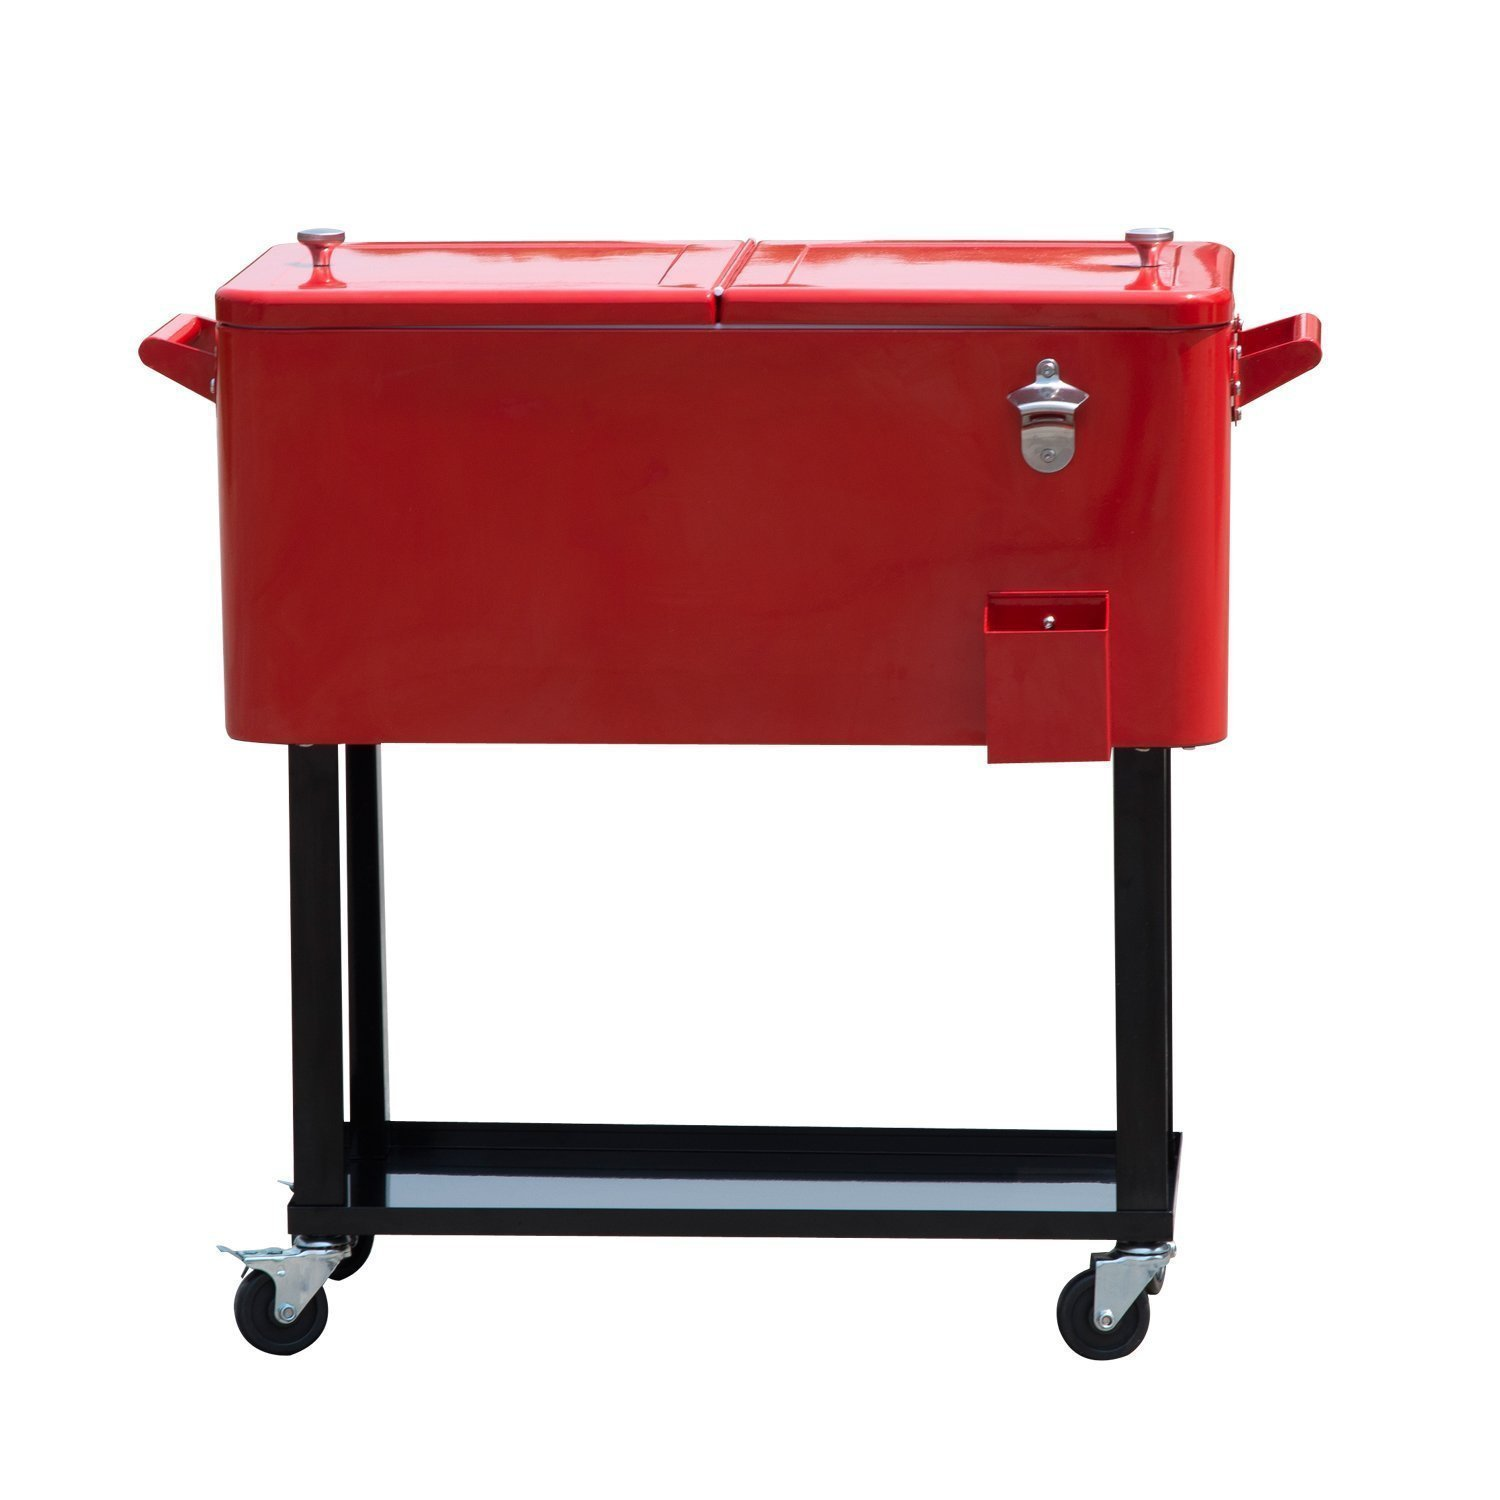 Amazon.com : Tenive 80 Quart Retro Cooler Patio Rolling Matel Cooler Steel  Ice Chest Portable Patio Party Bar Drink Entertaining Outdoor Cooler Cart    Red ...